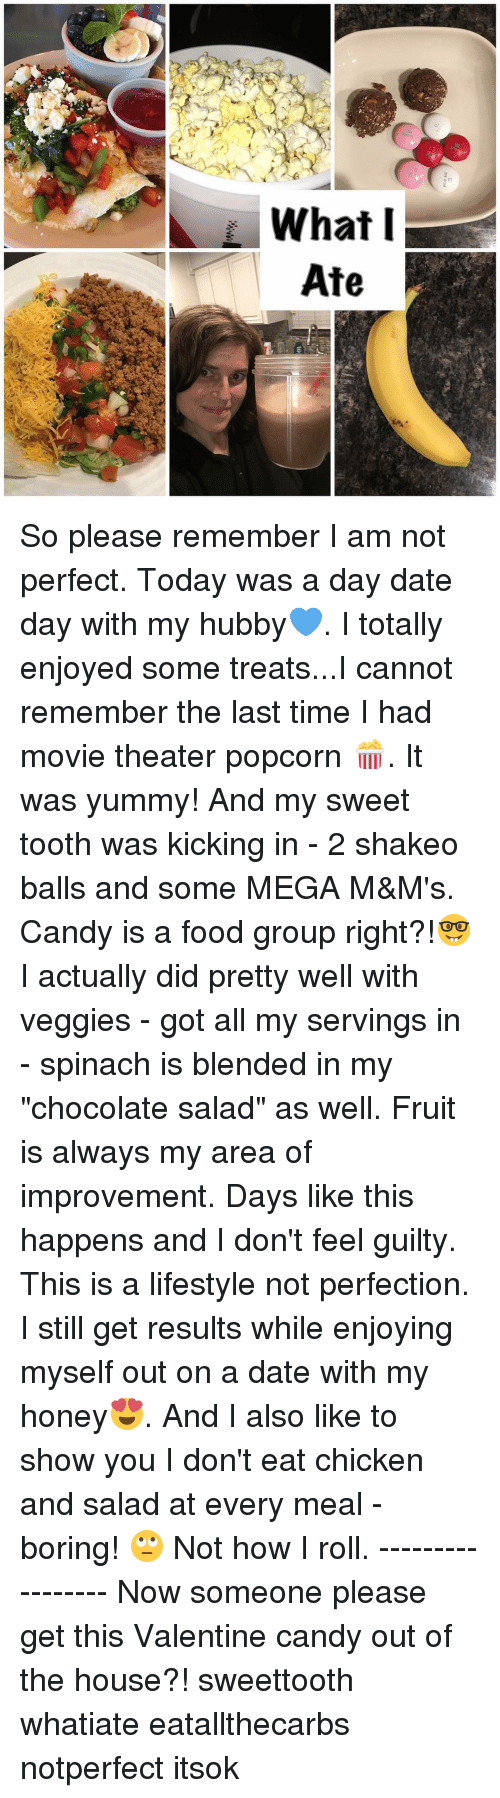 """Candy, Food, and Memes: What I  Ate So please remember I am not perfect. Today was a day date day with my hubby💙. I totally enjoyed some treats...I cannot remember the last time I had movie theater popcorn 🍿. It was yummy! And my sweet tooth was kicking in - 2 shakeo balls and some MEGA M&M's. Candy is a food group right?!🤓 I actually did pretty well with veggies - got all my servings in - spinach is blended in my """"chocolate salad"""" as well. Fruit is always my area of improvement. Days like this happens and I don't feel guilty. This is a lifestyle not perfection. I still get results while enjoying myself out on a date with my honey😍. And I also like to show you I don't eat chicken and salad at every meal - boring! 🙄 Not how I roll. ----------------- Now someone please get this Valentine candy out of the house?! sweettooth whatiate eatallthecarbs notperfect itsok"""